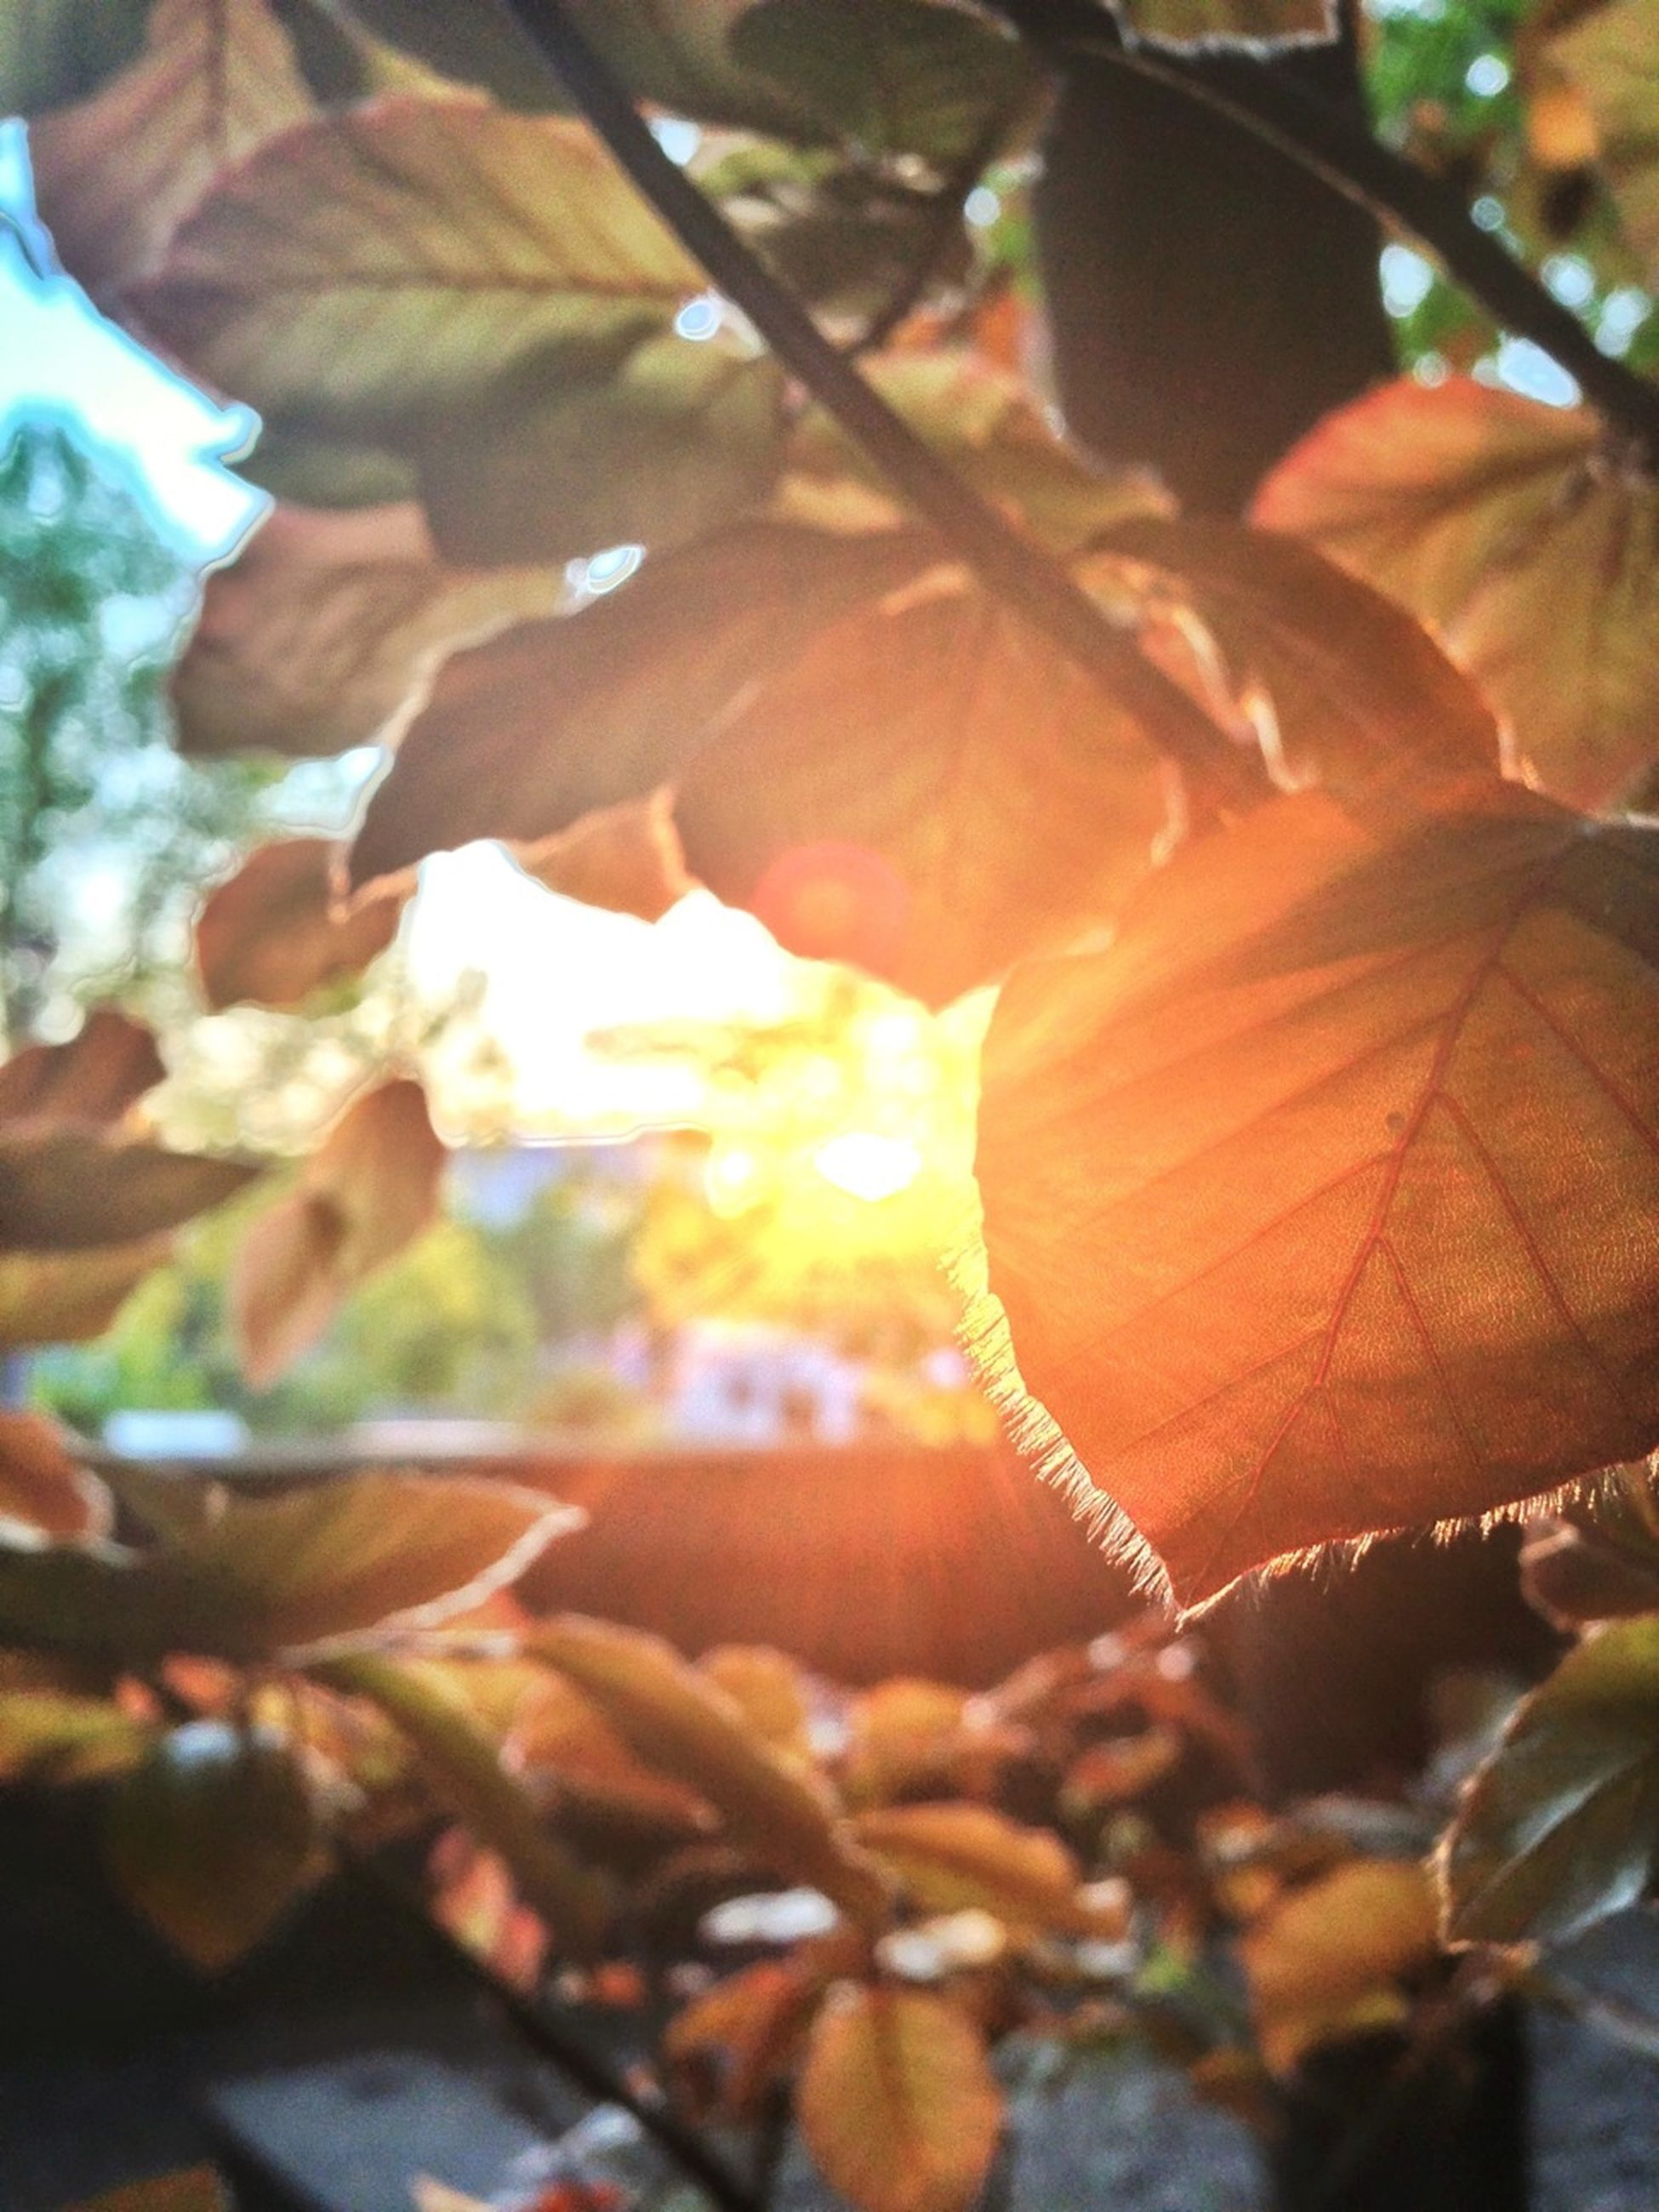 leaf, tree, branch, focus on foreground, growth, close-up, nature, autumn, leaves, leaf vein, beauty in nature, sunlight, change, low angle view, season, selective focus, tranquility, outdoors, natural pattern, day